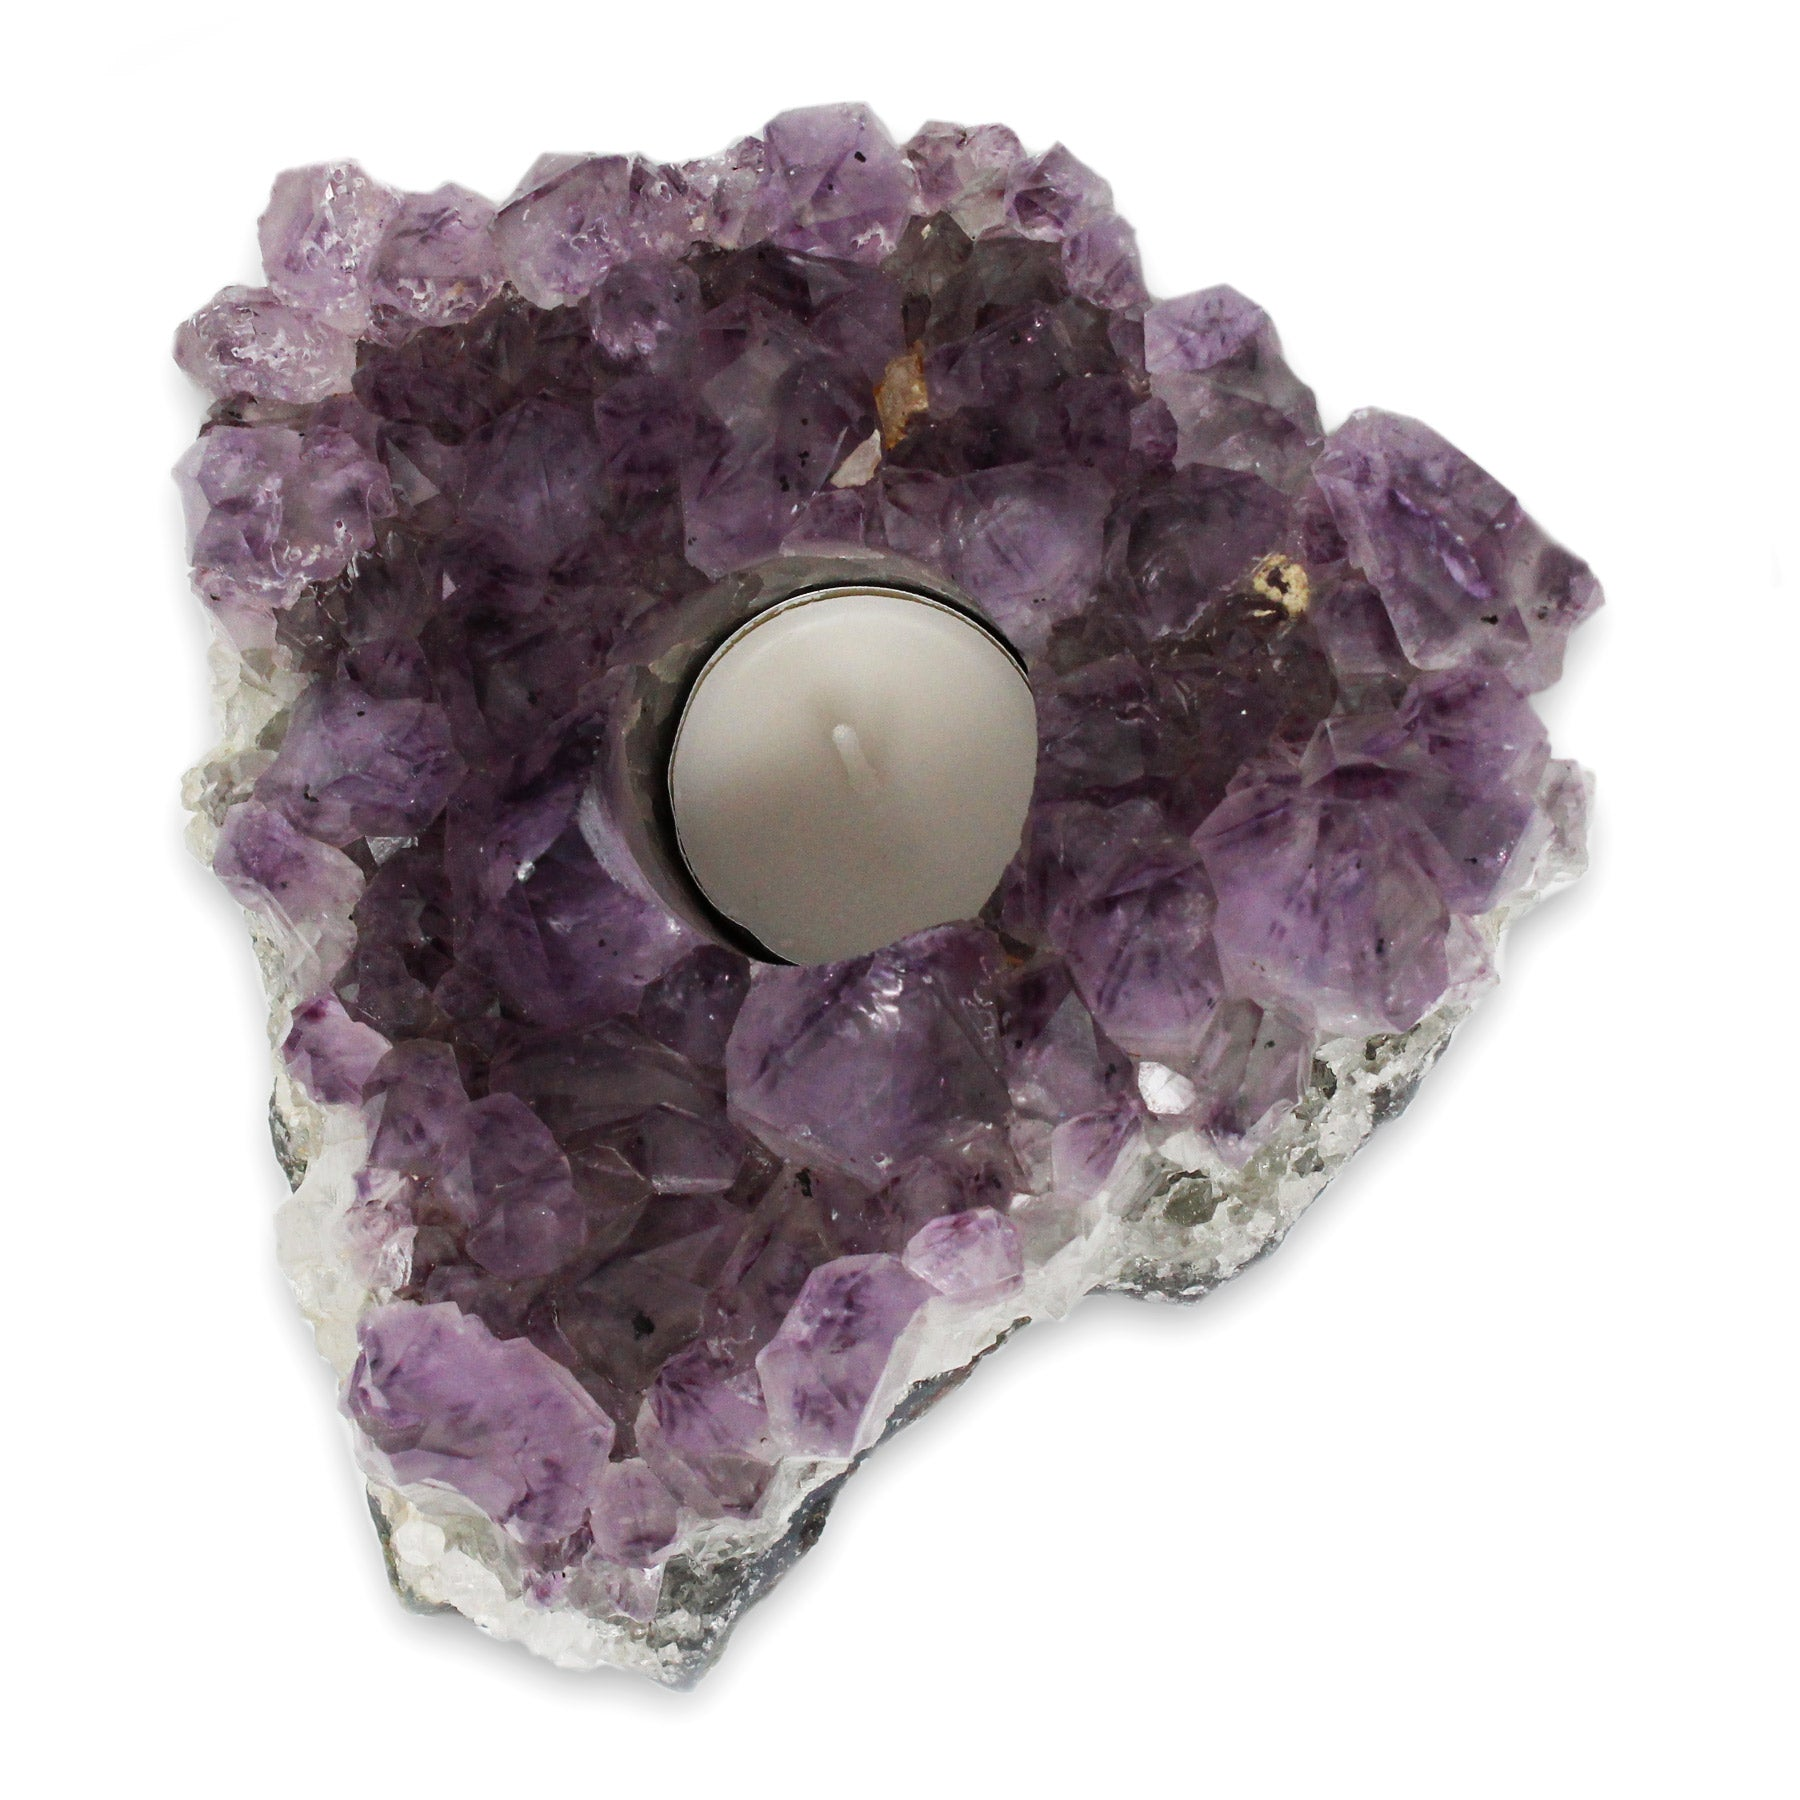 Amethyst Tea Light Candle Holder - A